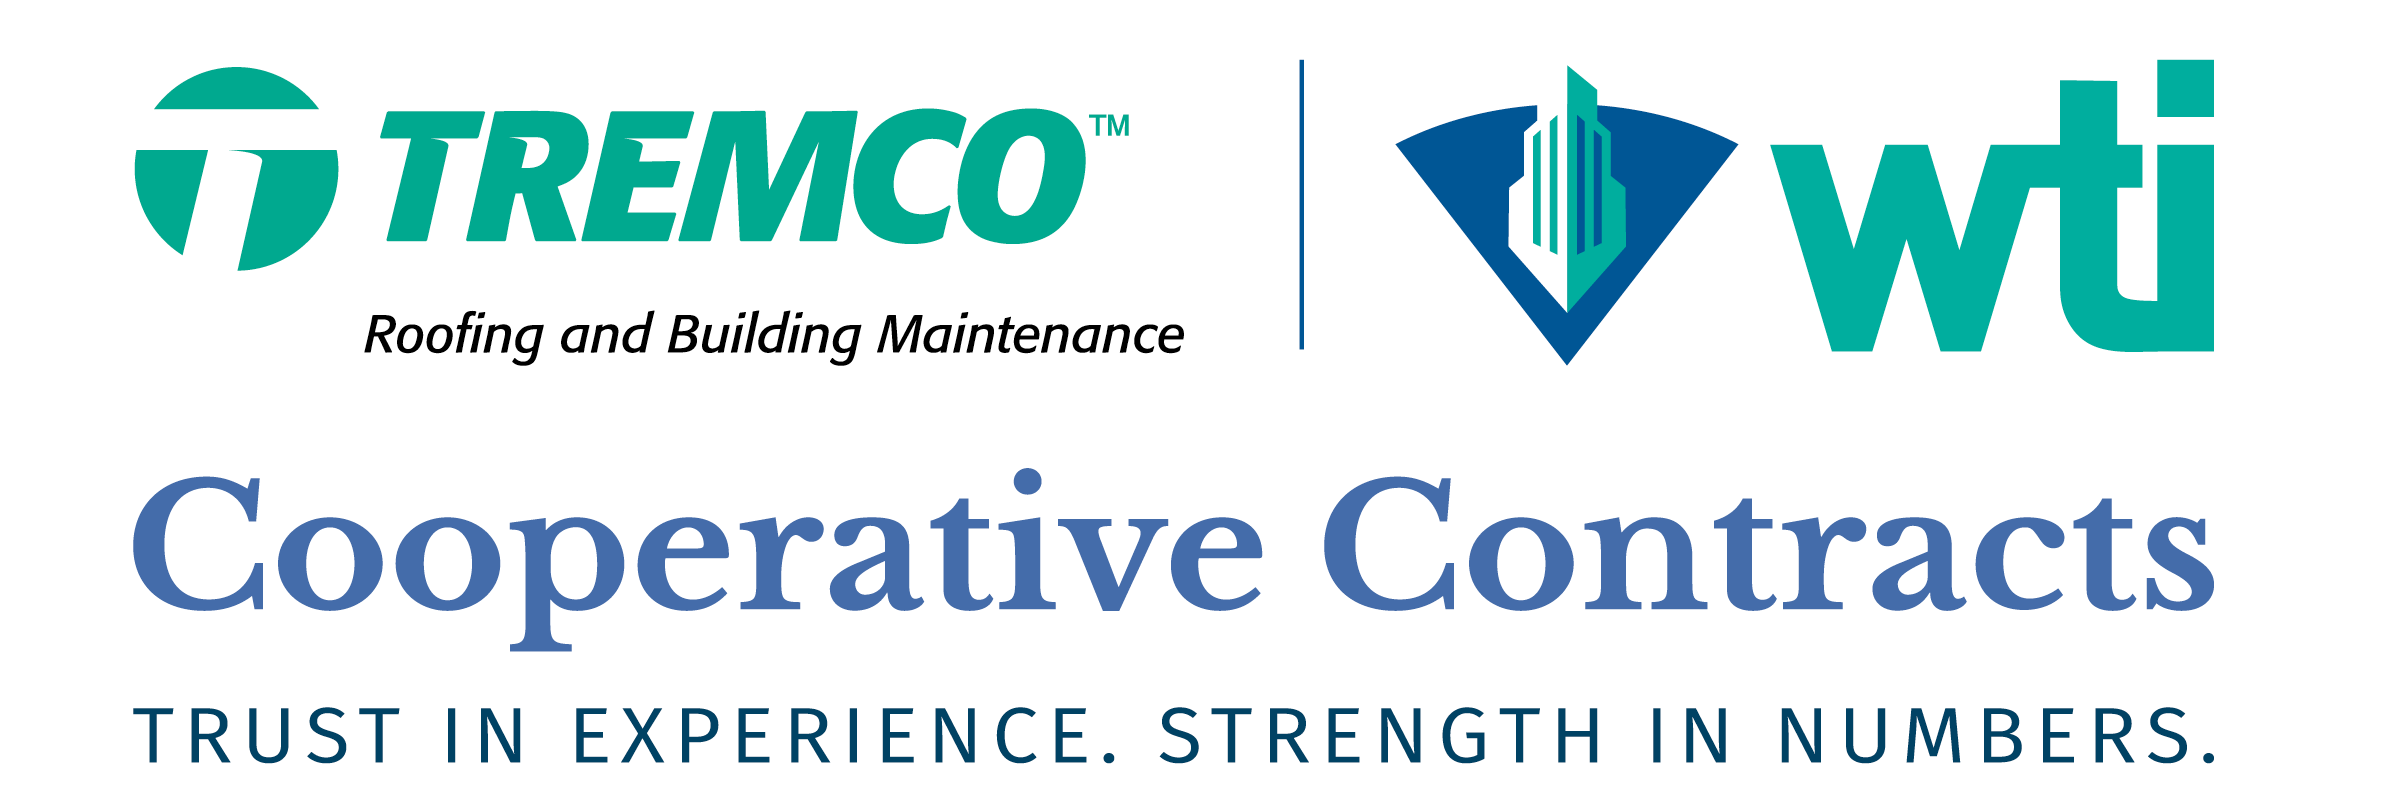 Tremco Roofing & Building Maintenance Logo